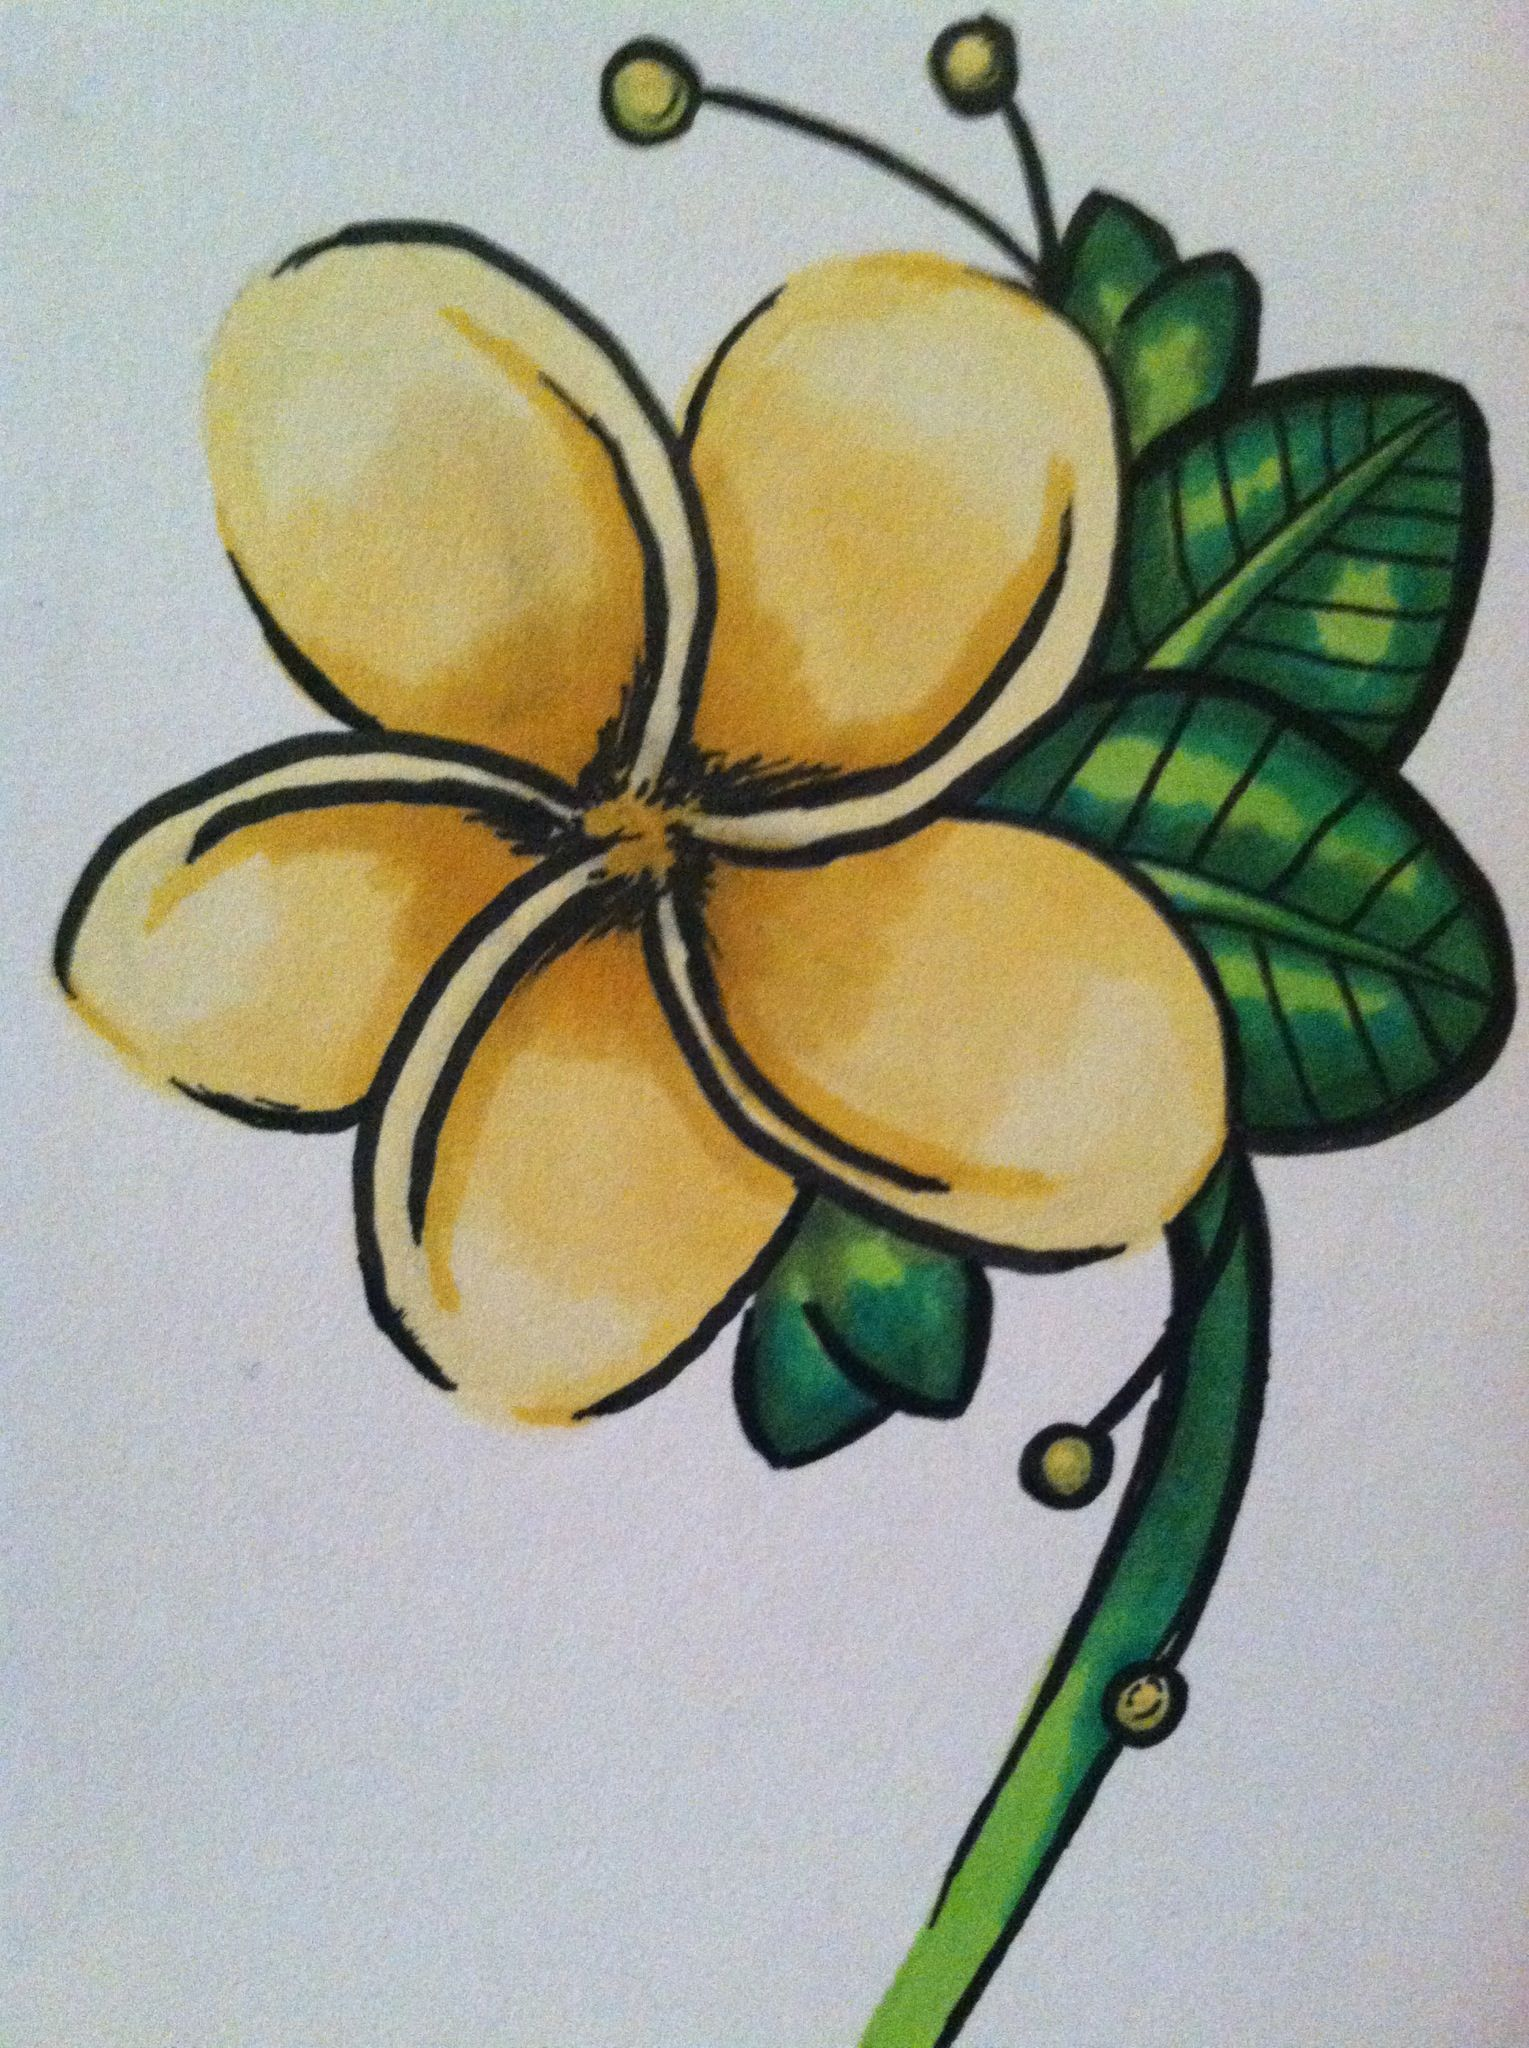 How to Color a Simple Leaves With Prismacolor Markers | Recipe ...